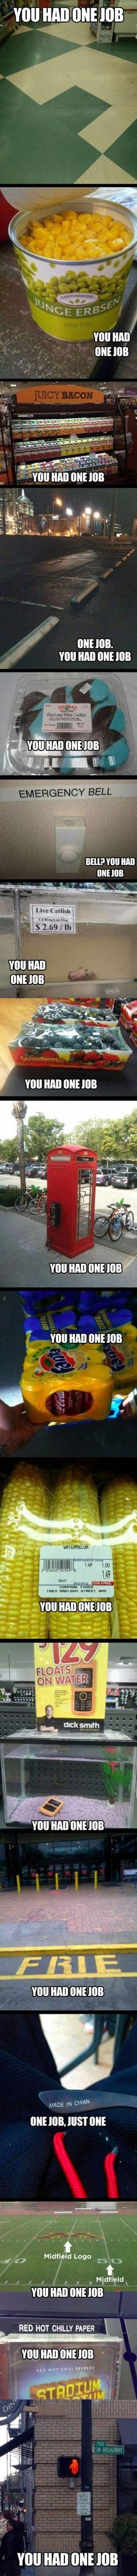 LOL – You had one job - Funny Pictures, MEME and LOL by Funny Pictures Blog